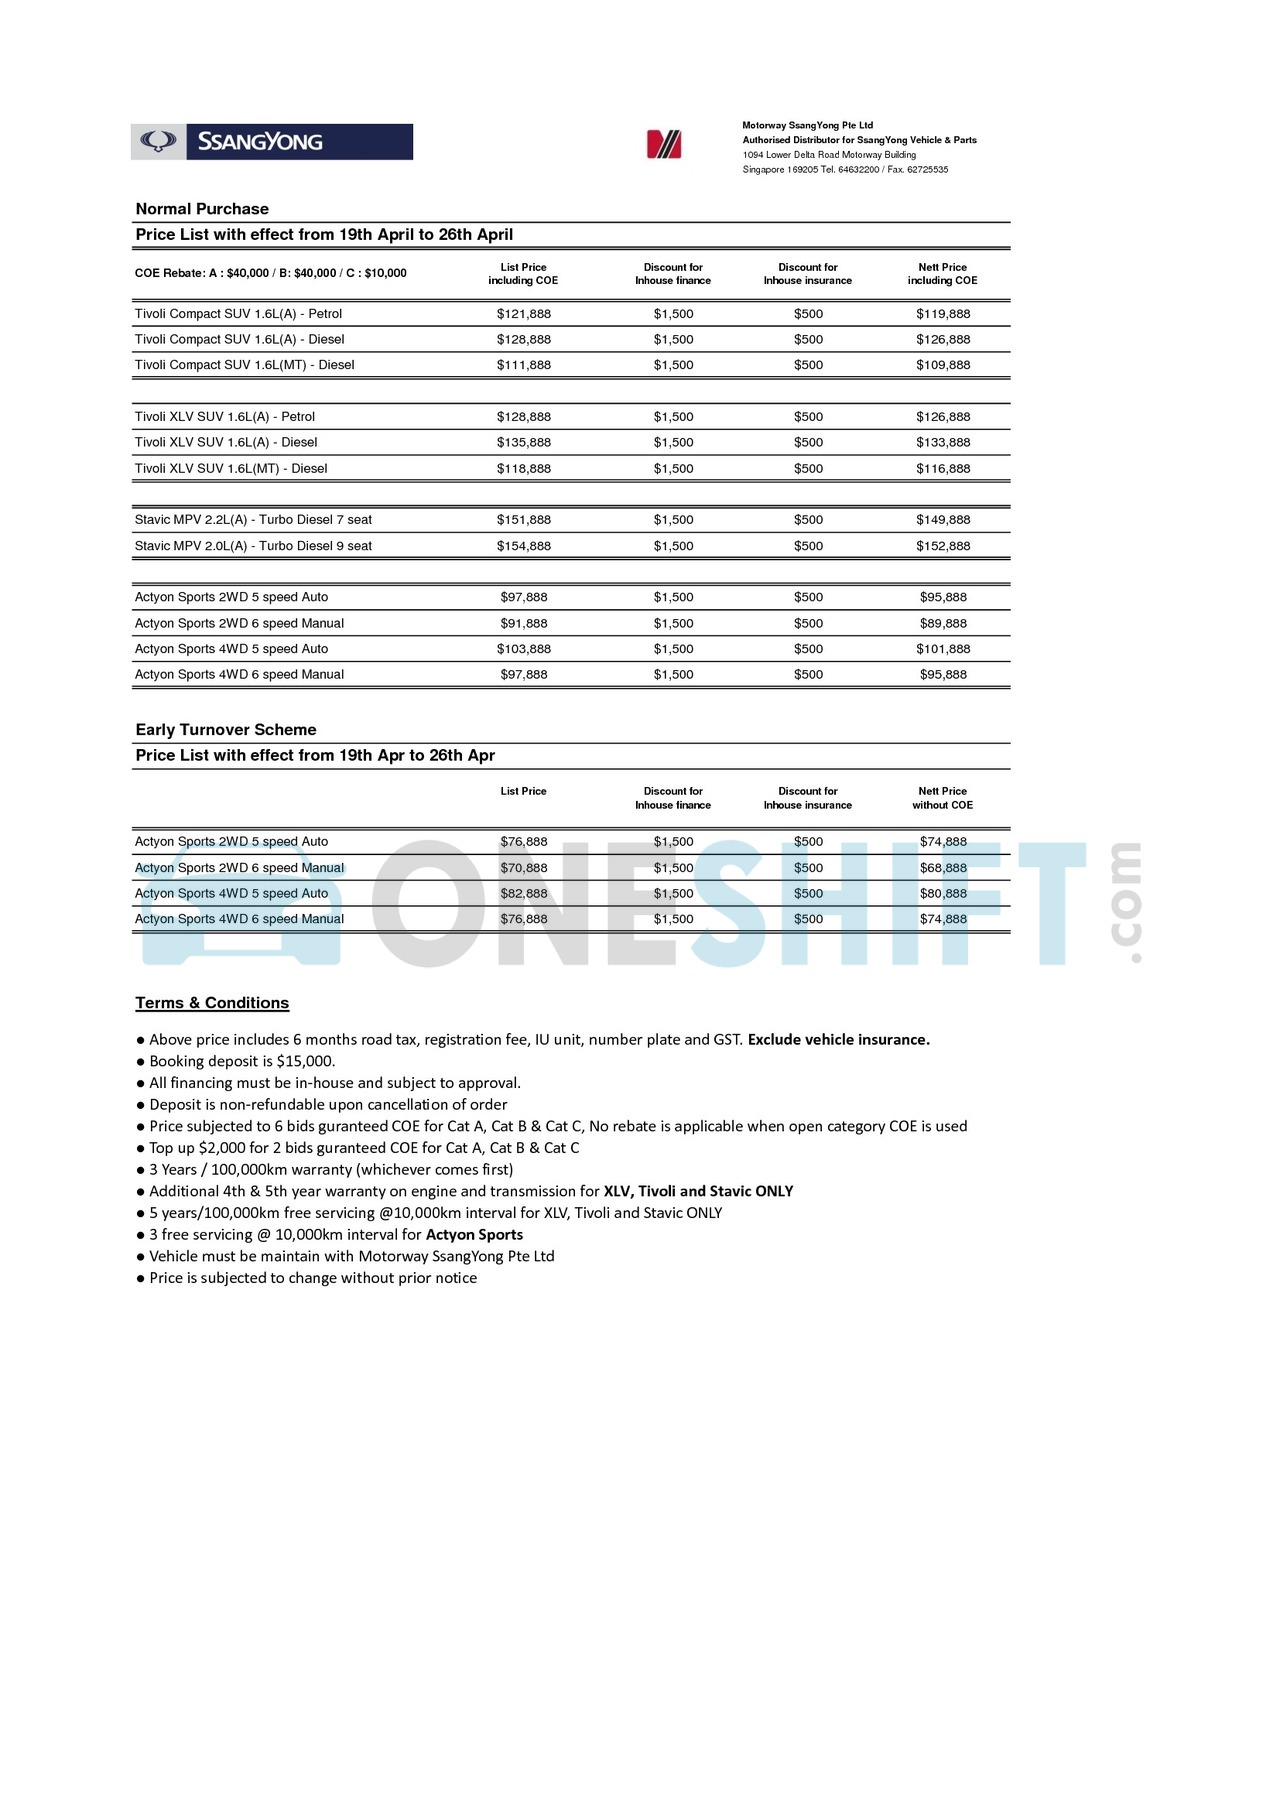 ssangyong Price List 4-19-2017 Page 1